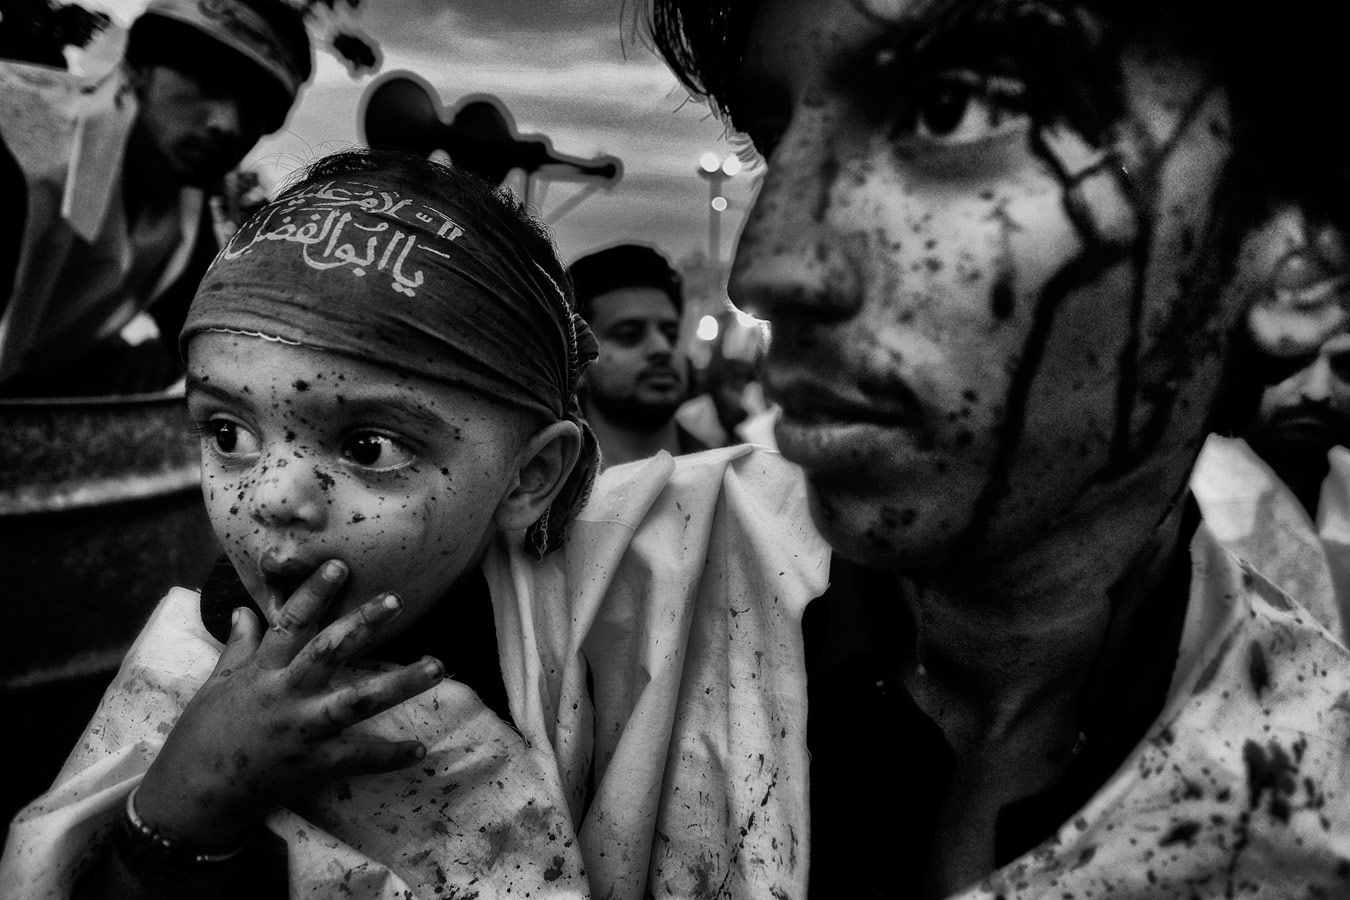 Moharam, © Alain Schroeder, Best Single Image Category, Focus on the Story Awards